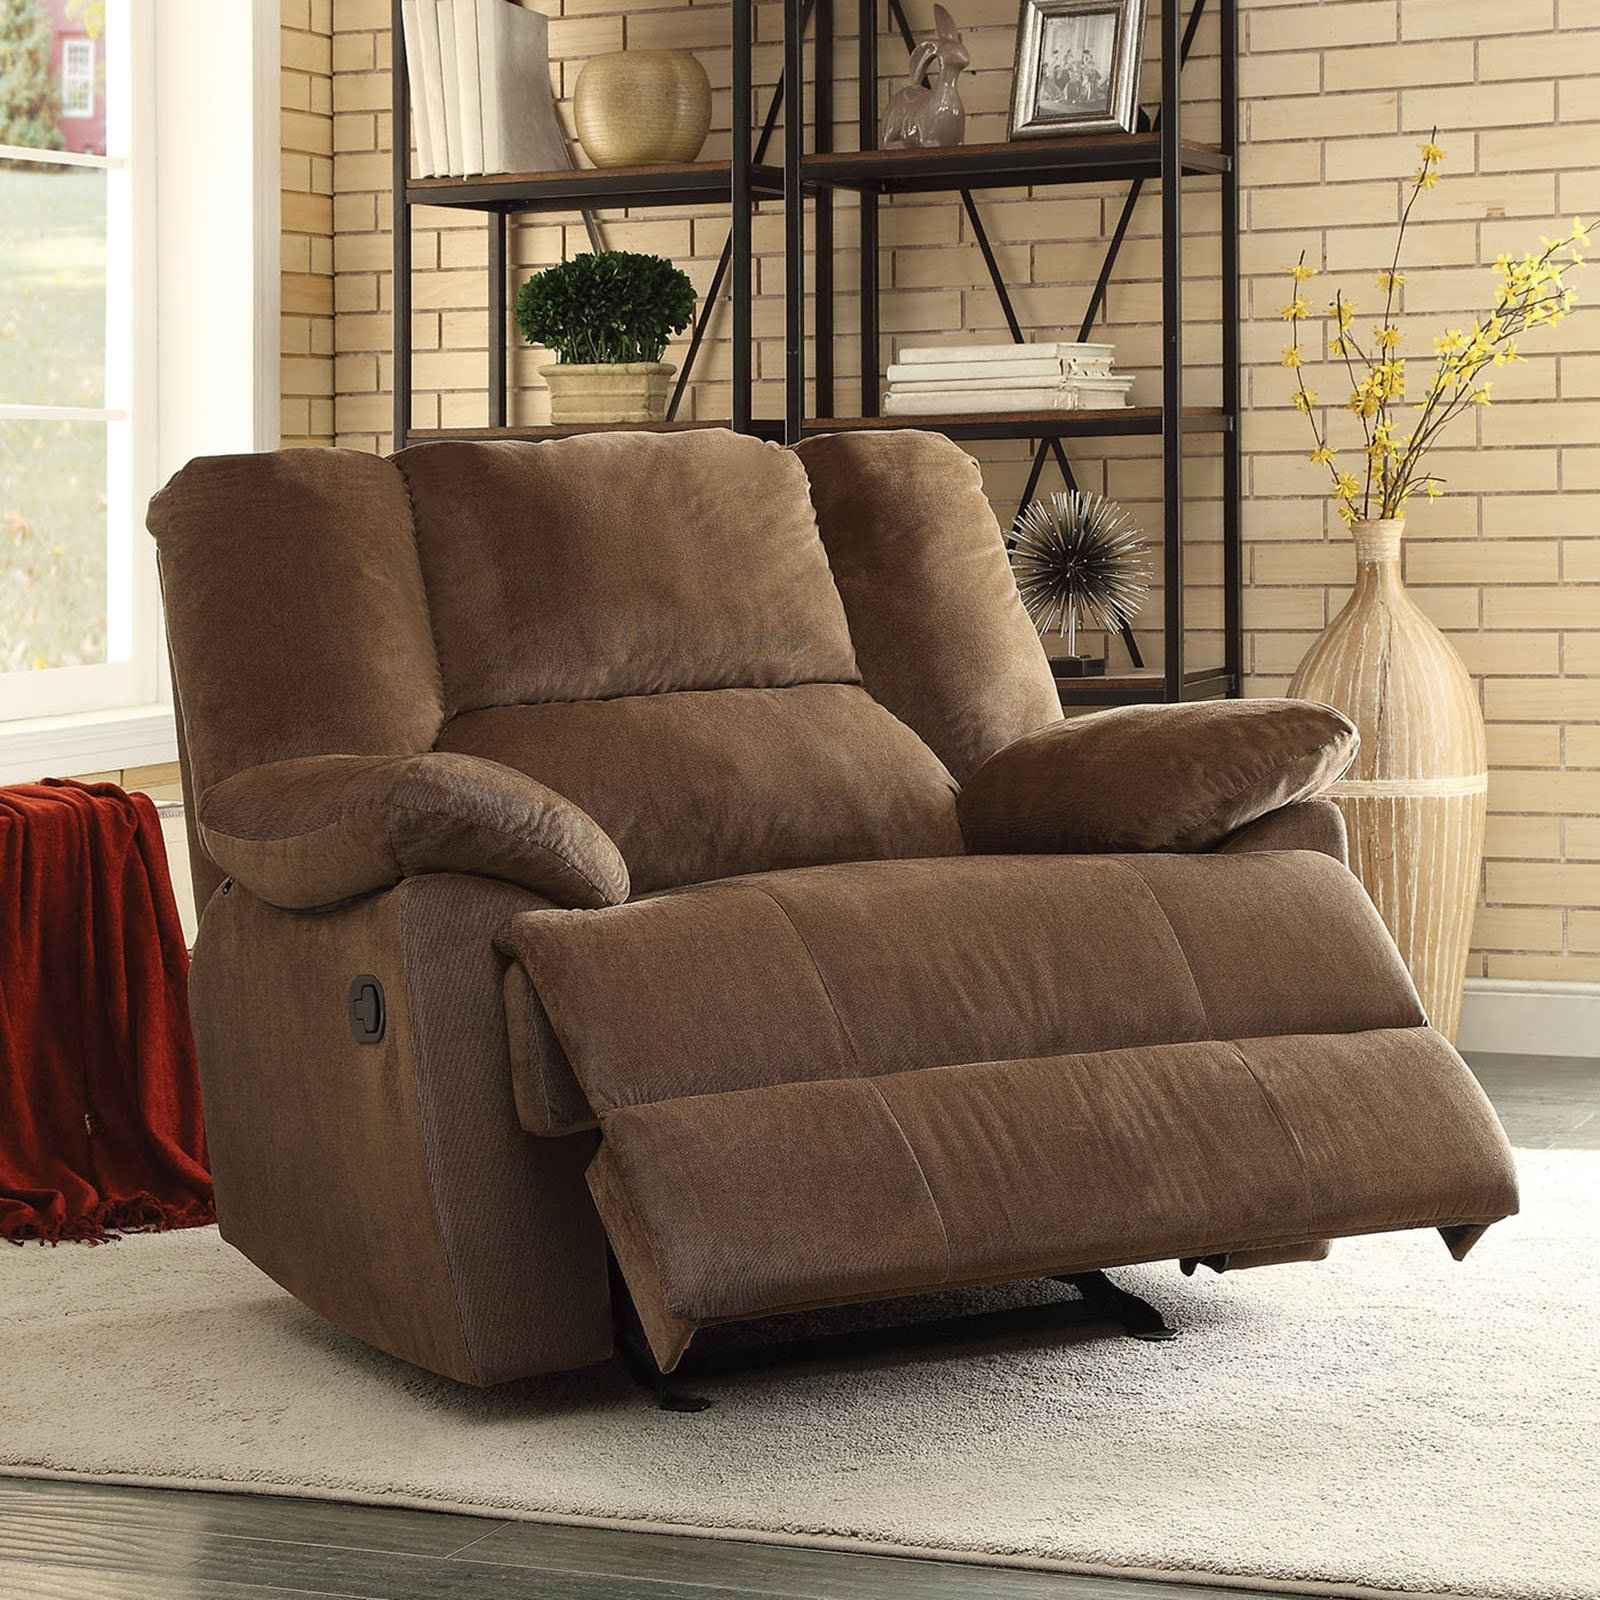 Swell Acme Furniture Oliver Fabric Glider Recliner Chocolate In Gmtry Best Dining Table And Chair Ideas Images Gmtryco